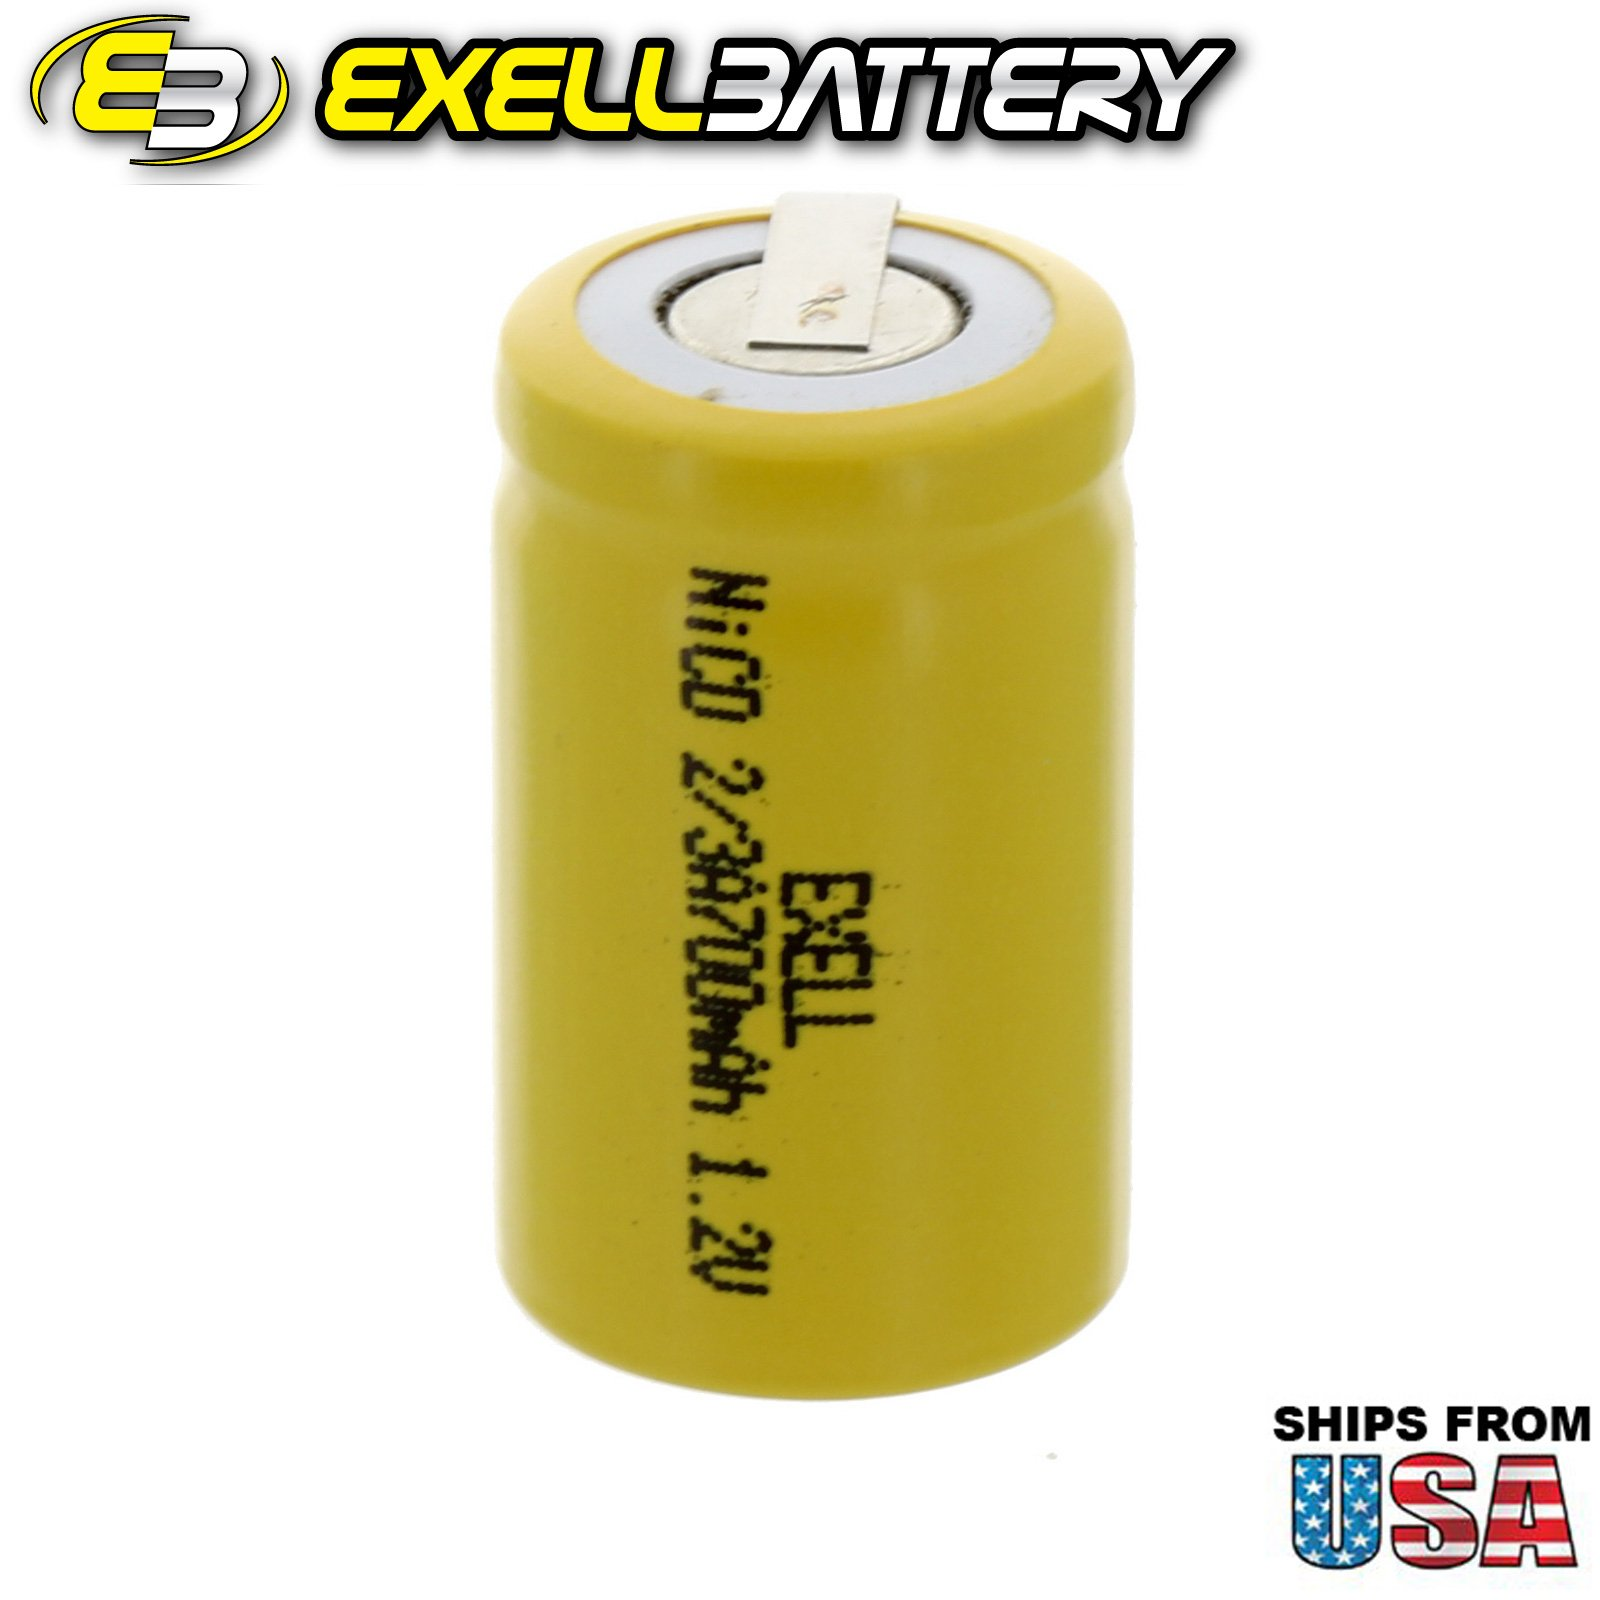 Exell 2/3A Size 1.2V 700mAh NiCD Rechargeable Battery with Tabs for meters, radios, hybrid automobiles, high power static applications (Telecoms, UPS and Smart grid), radio controlled devices